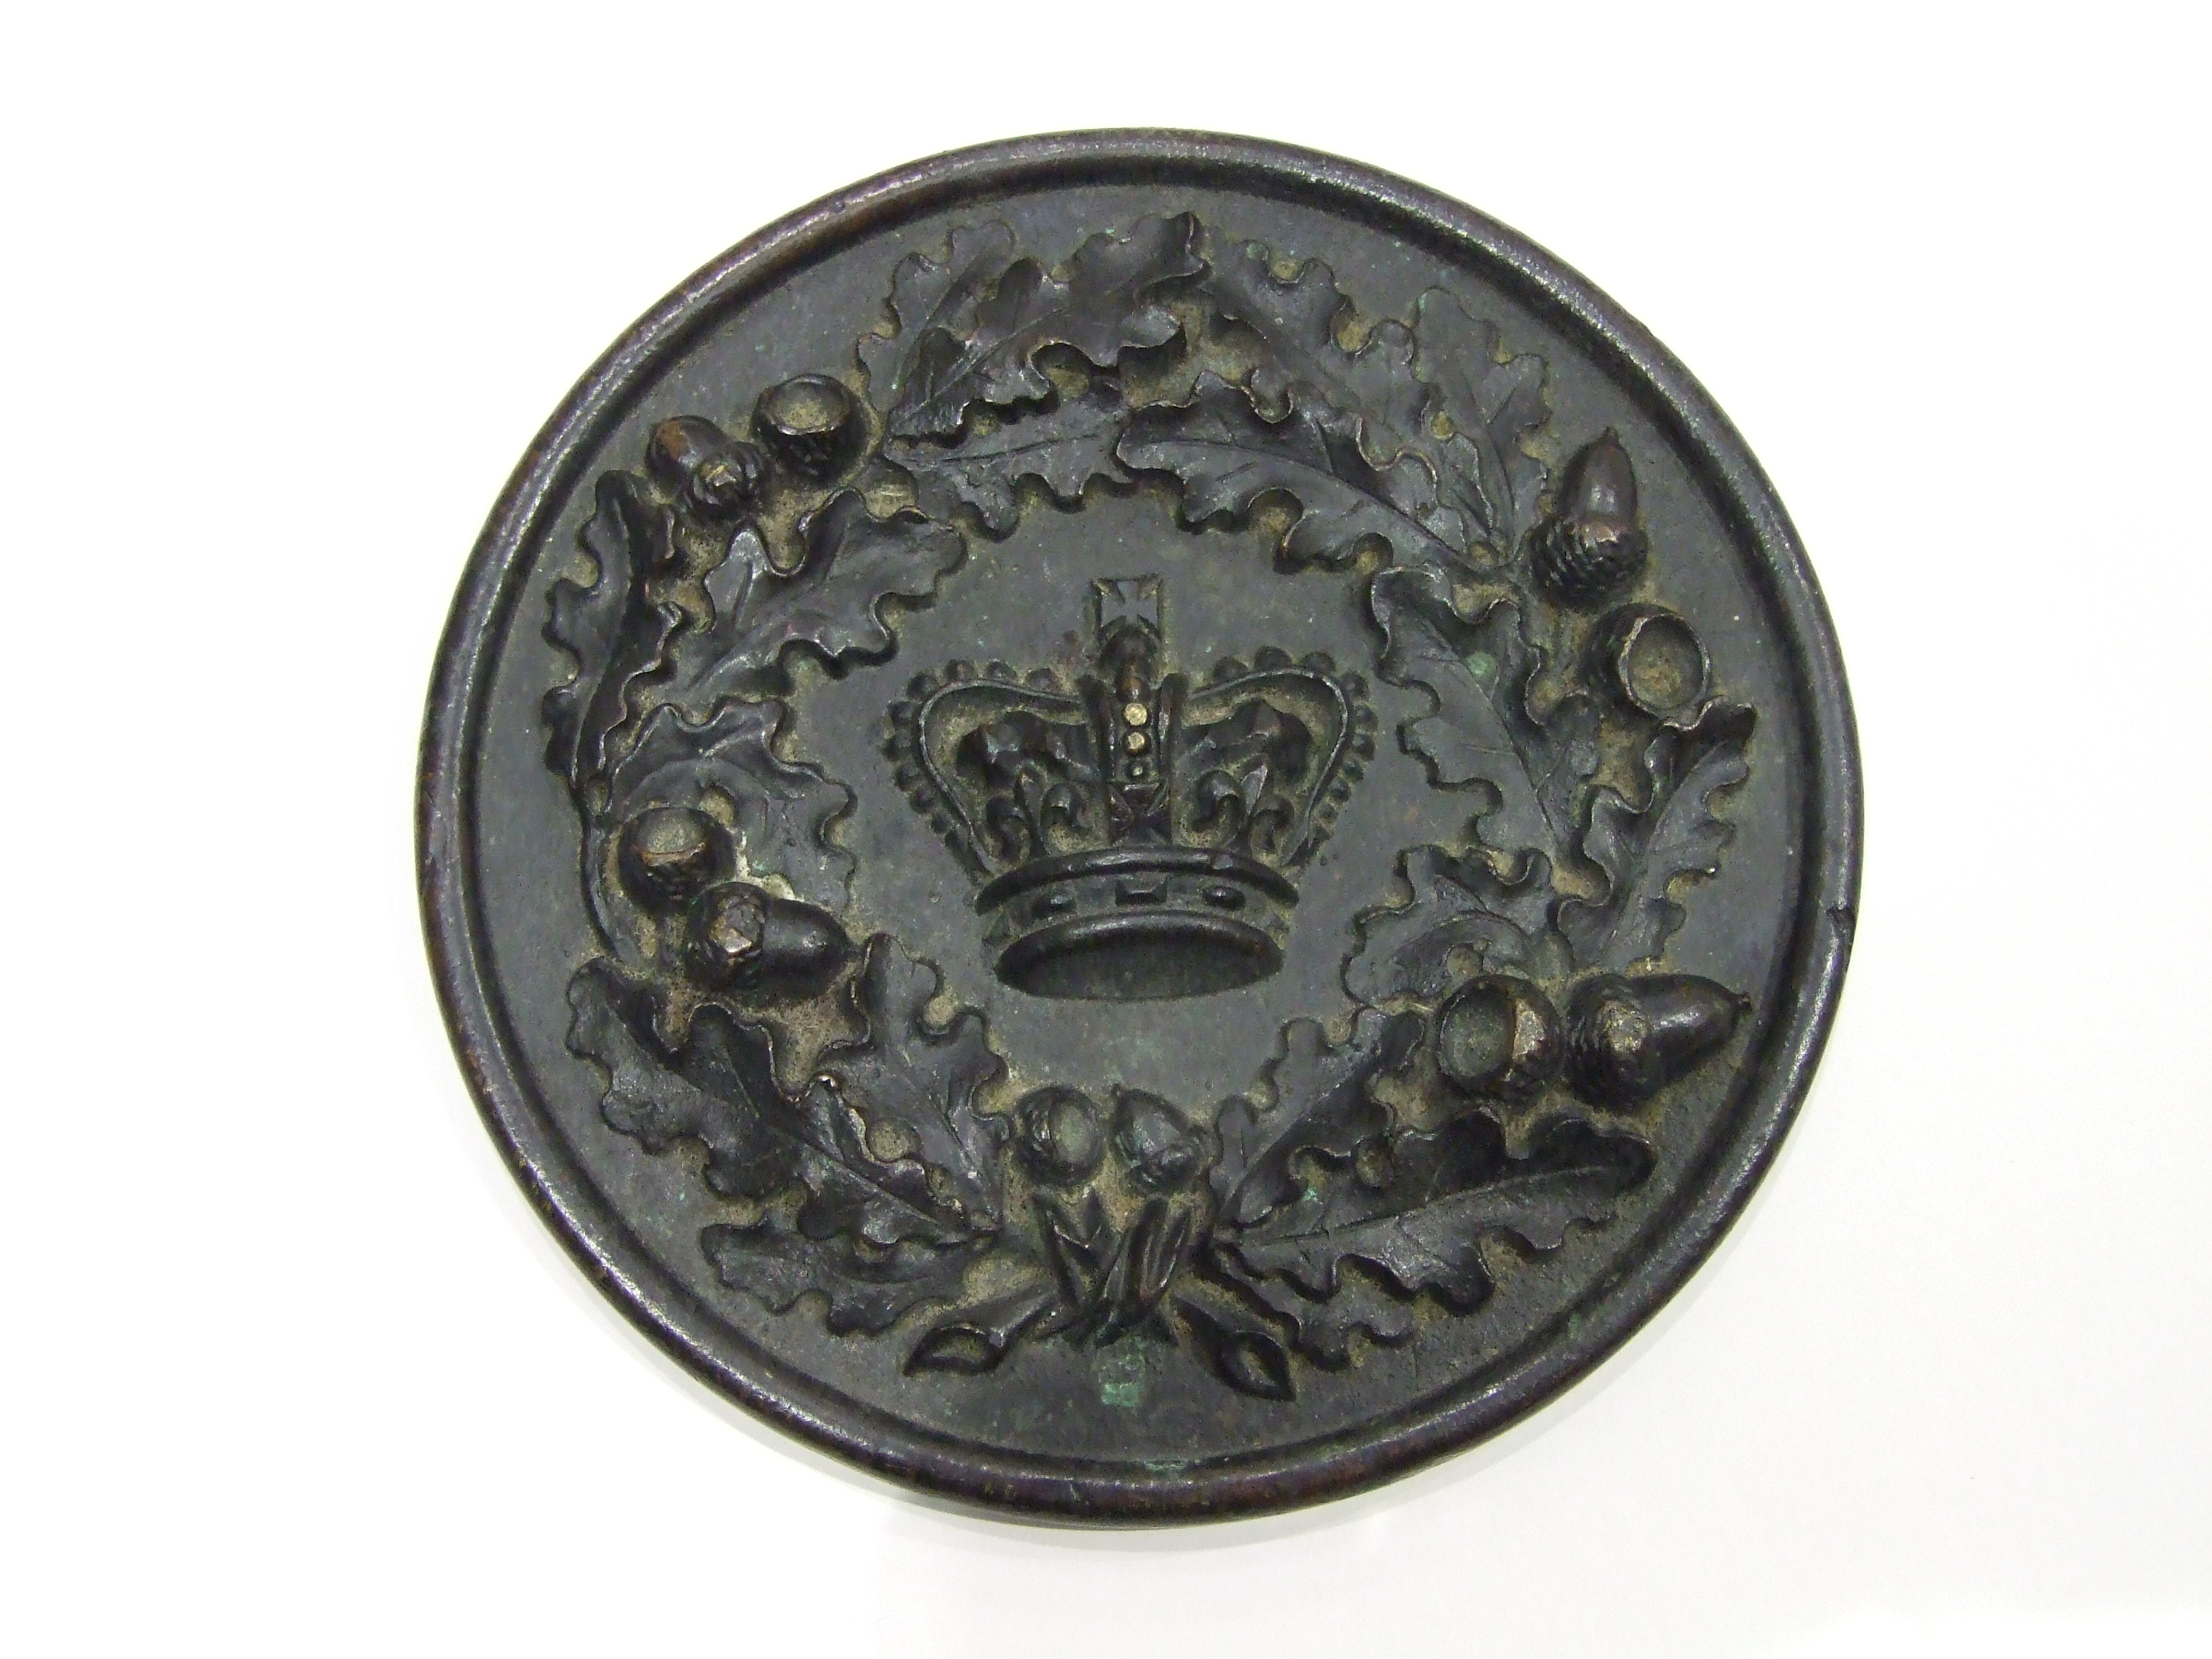 Lot 251 - A 19th/20th century circular bronze plaque with cast central crown surrounded by oak leaves and